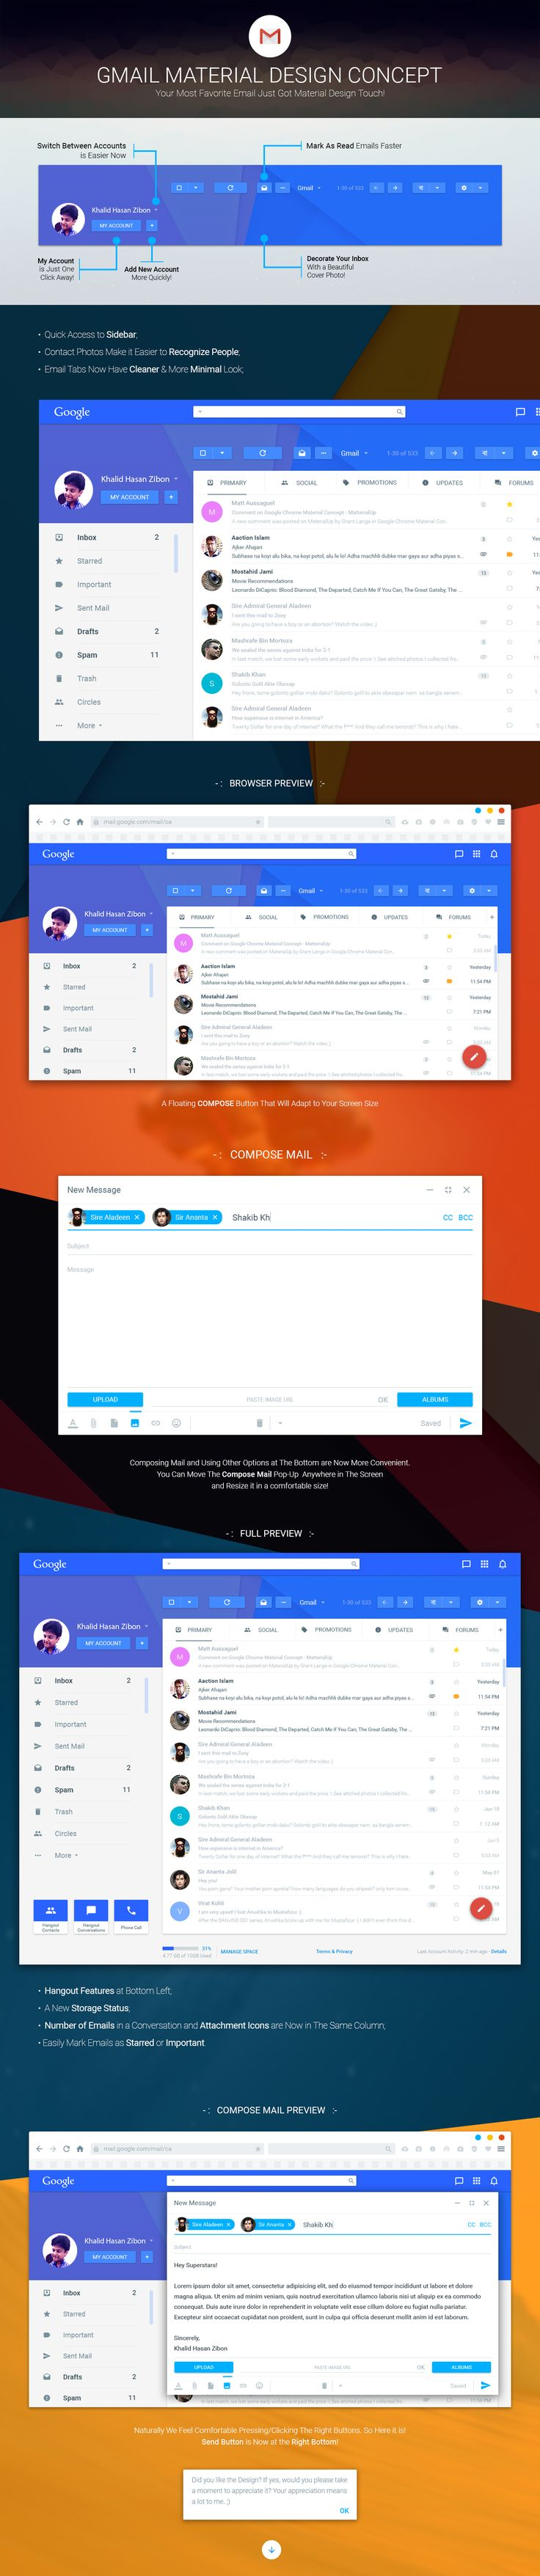 Gmail Material Design Concept on Behance